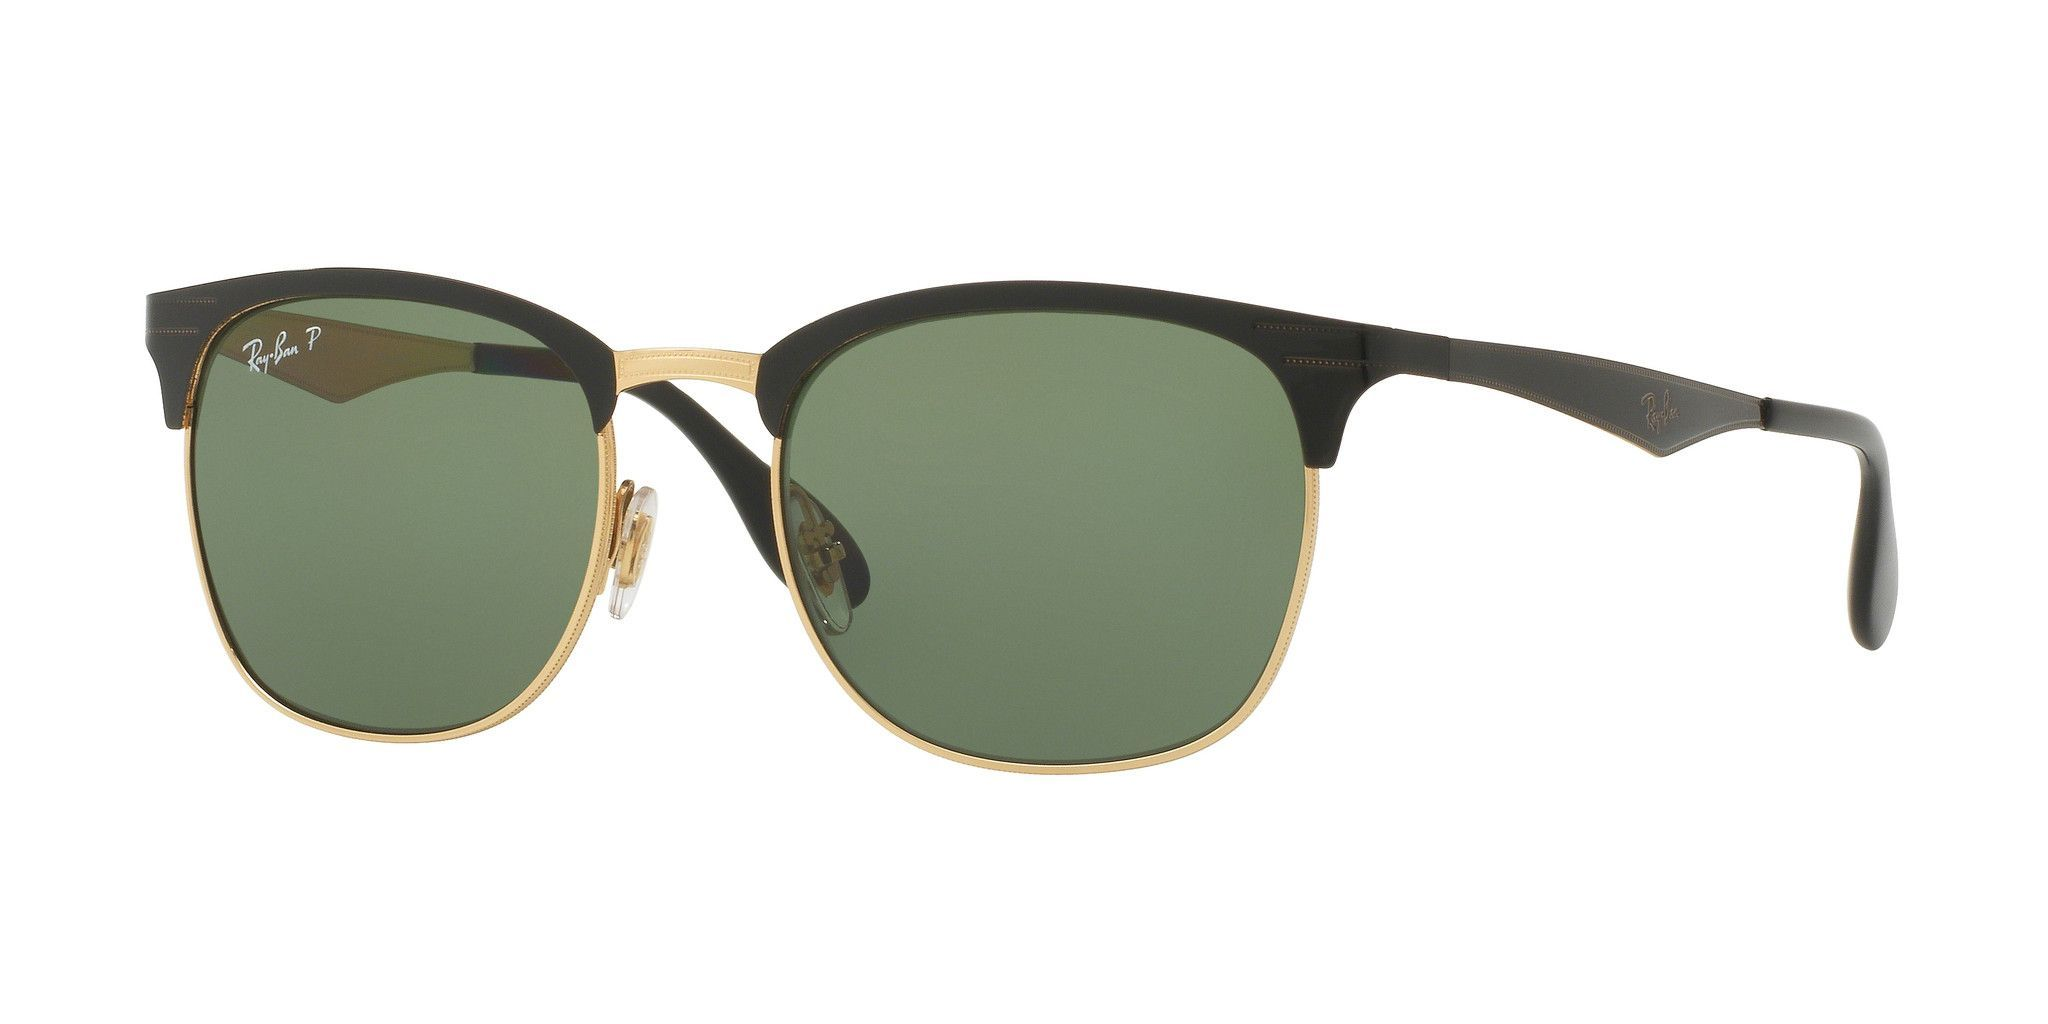 Ray-Ban RB3538 187/9A 53mm Sunglasses